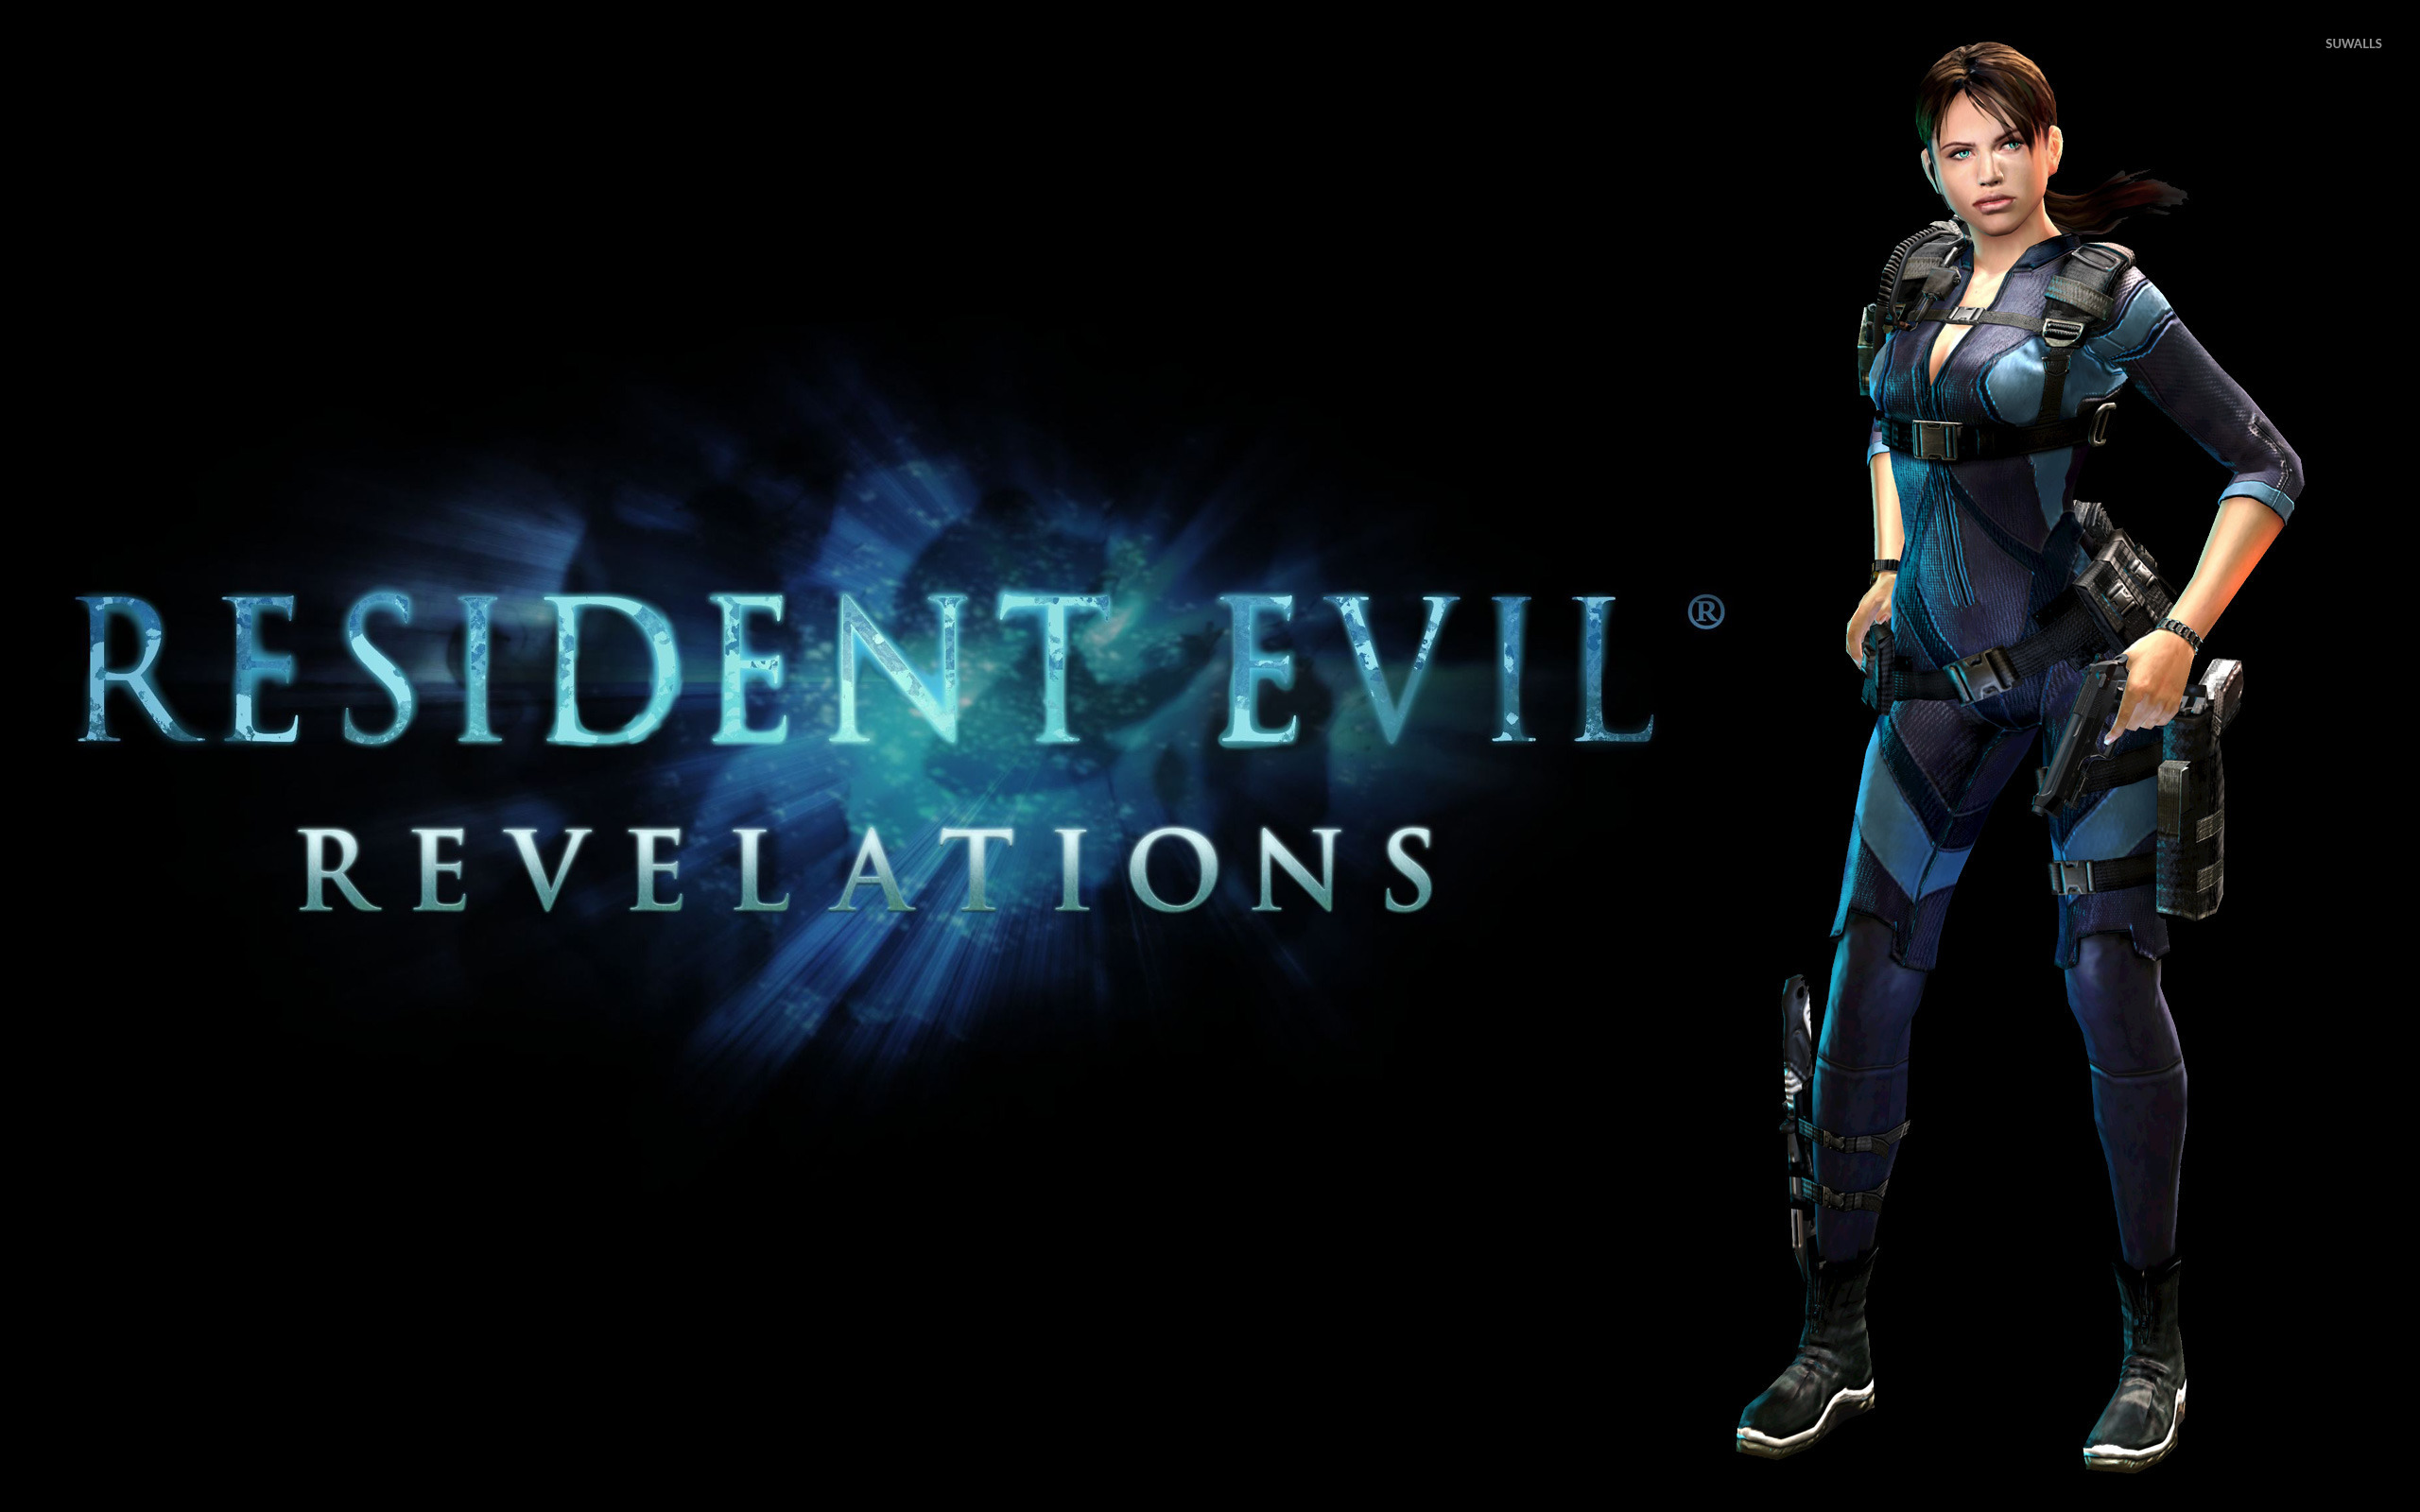 Jill Valentine Resident Evil Revelations 2 Wallpaper Game